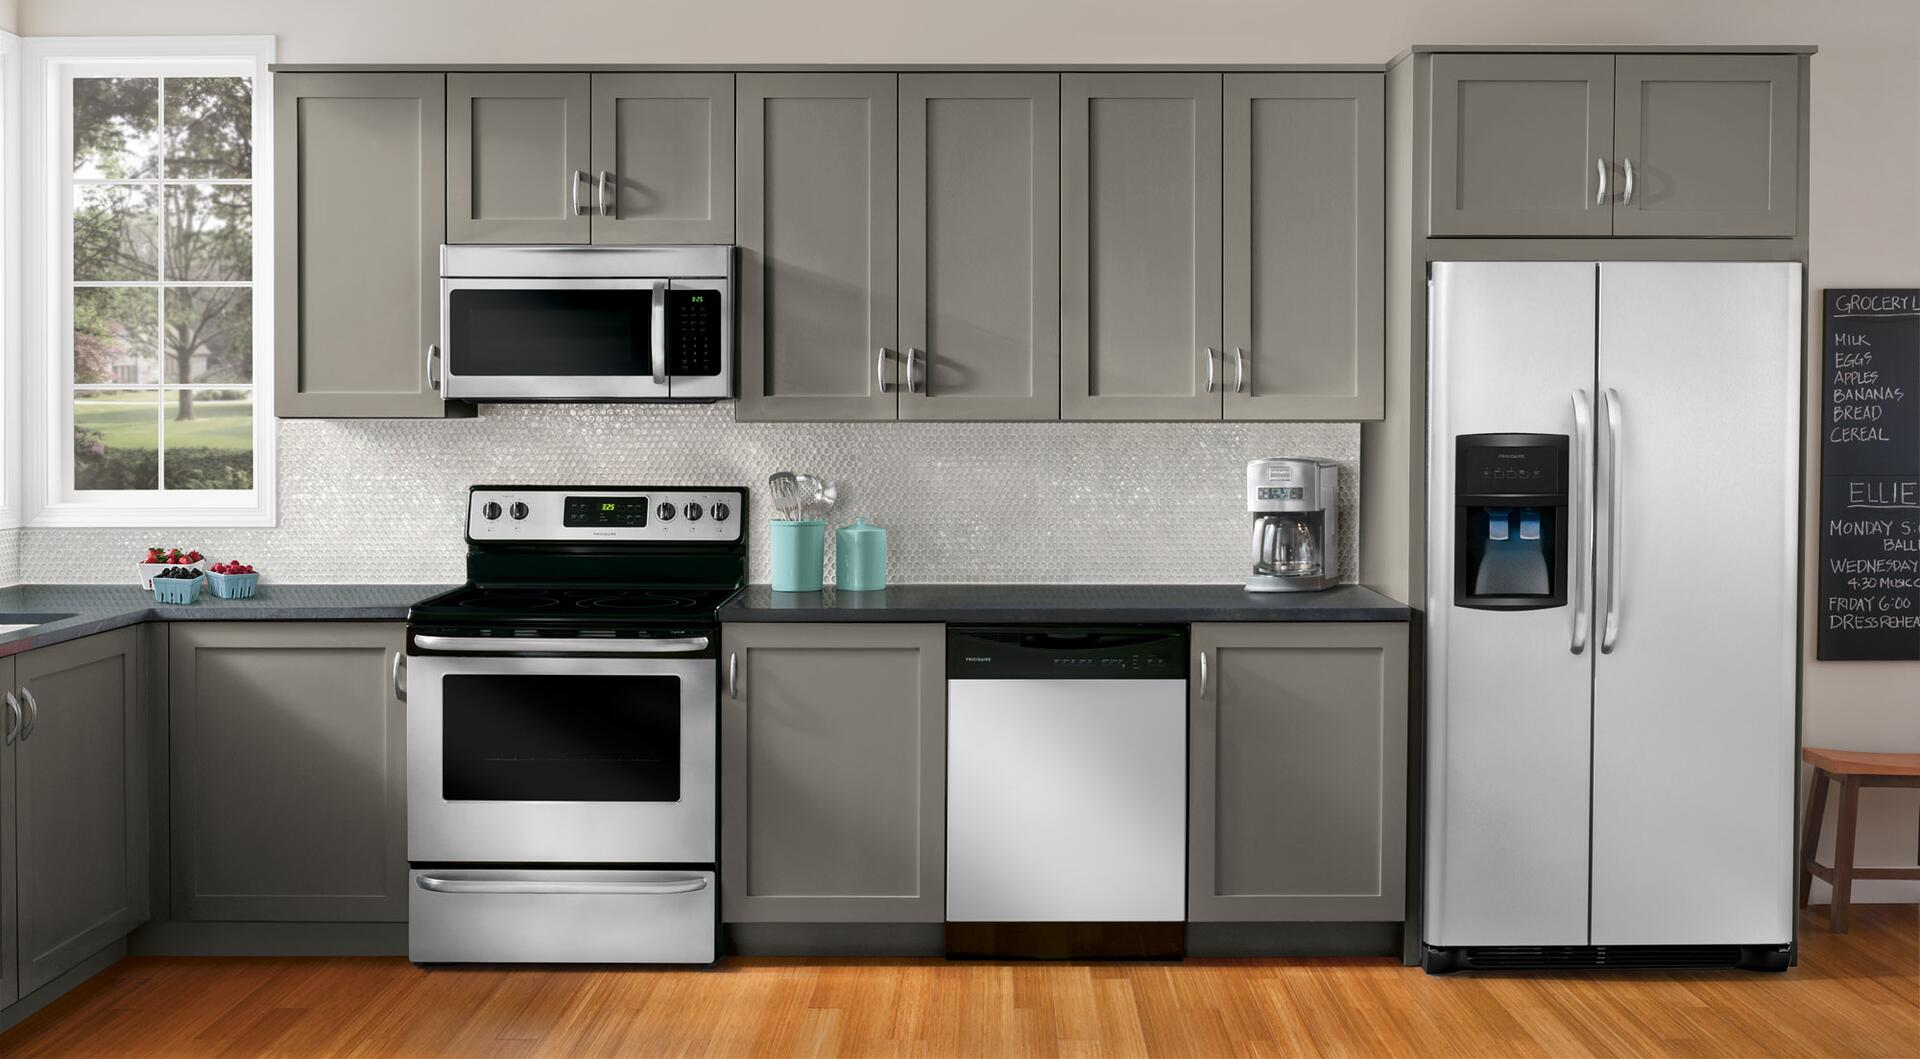 Uncategorized Frigidaire Kitchen Appliance Packages frigidaire ffbd2411ns 24 inch built in full console dishwasher 6